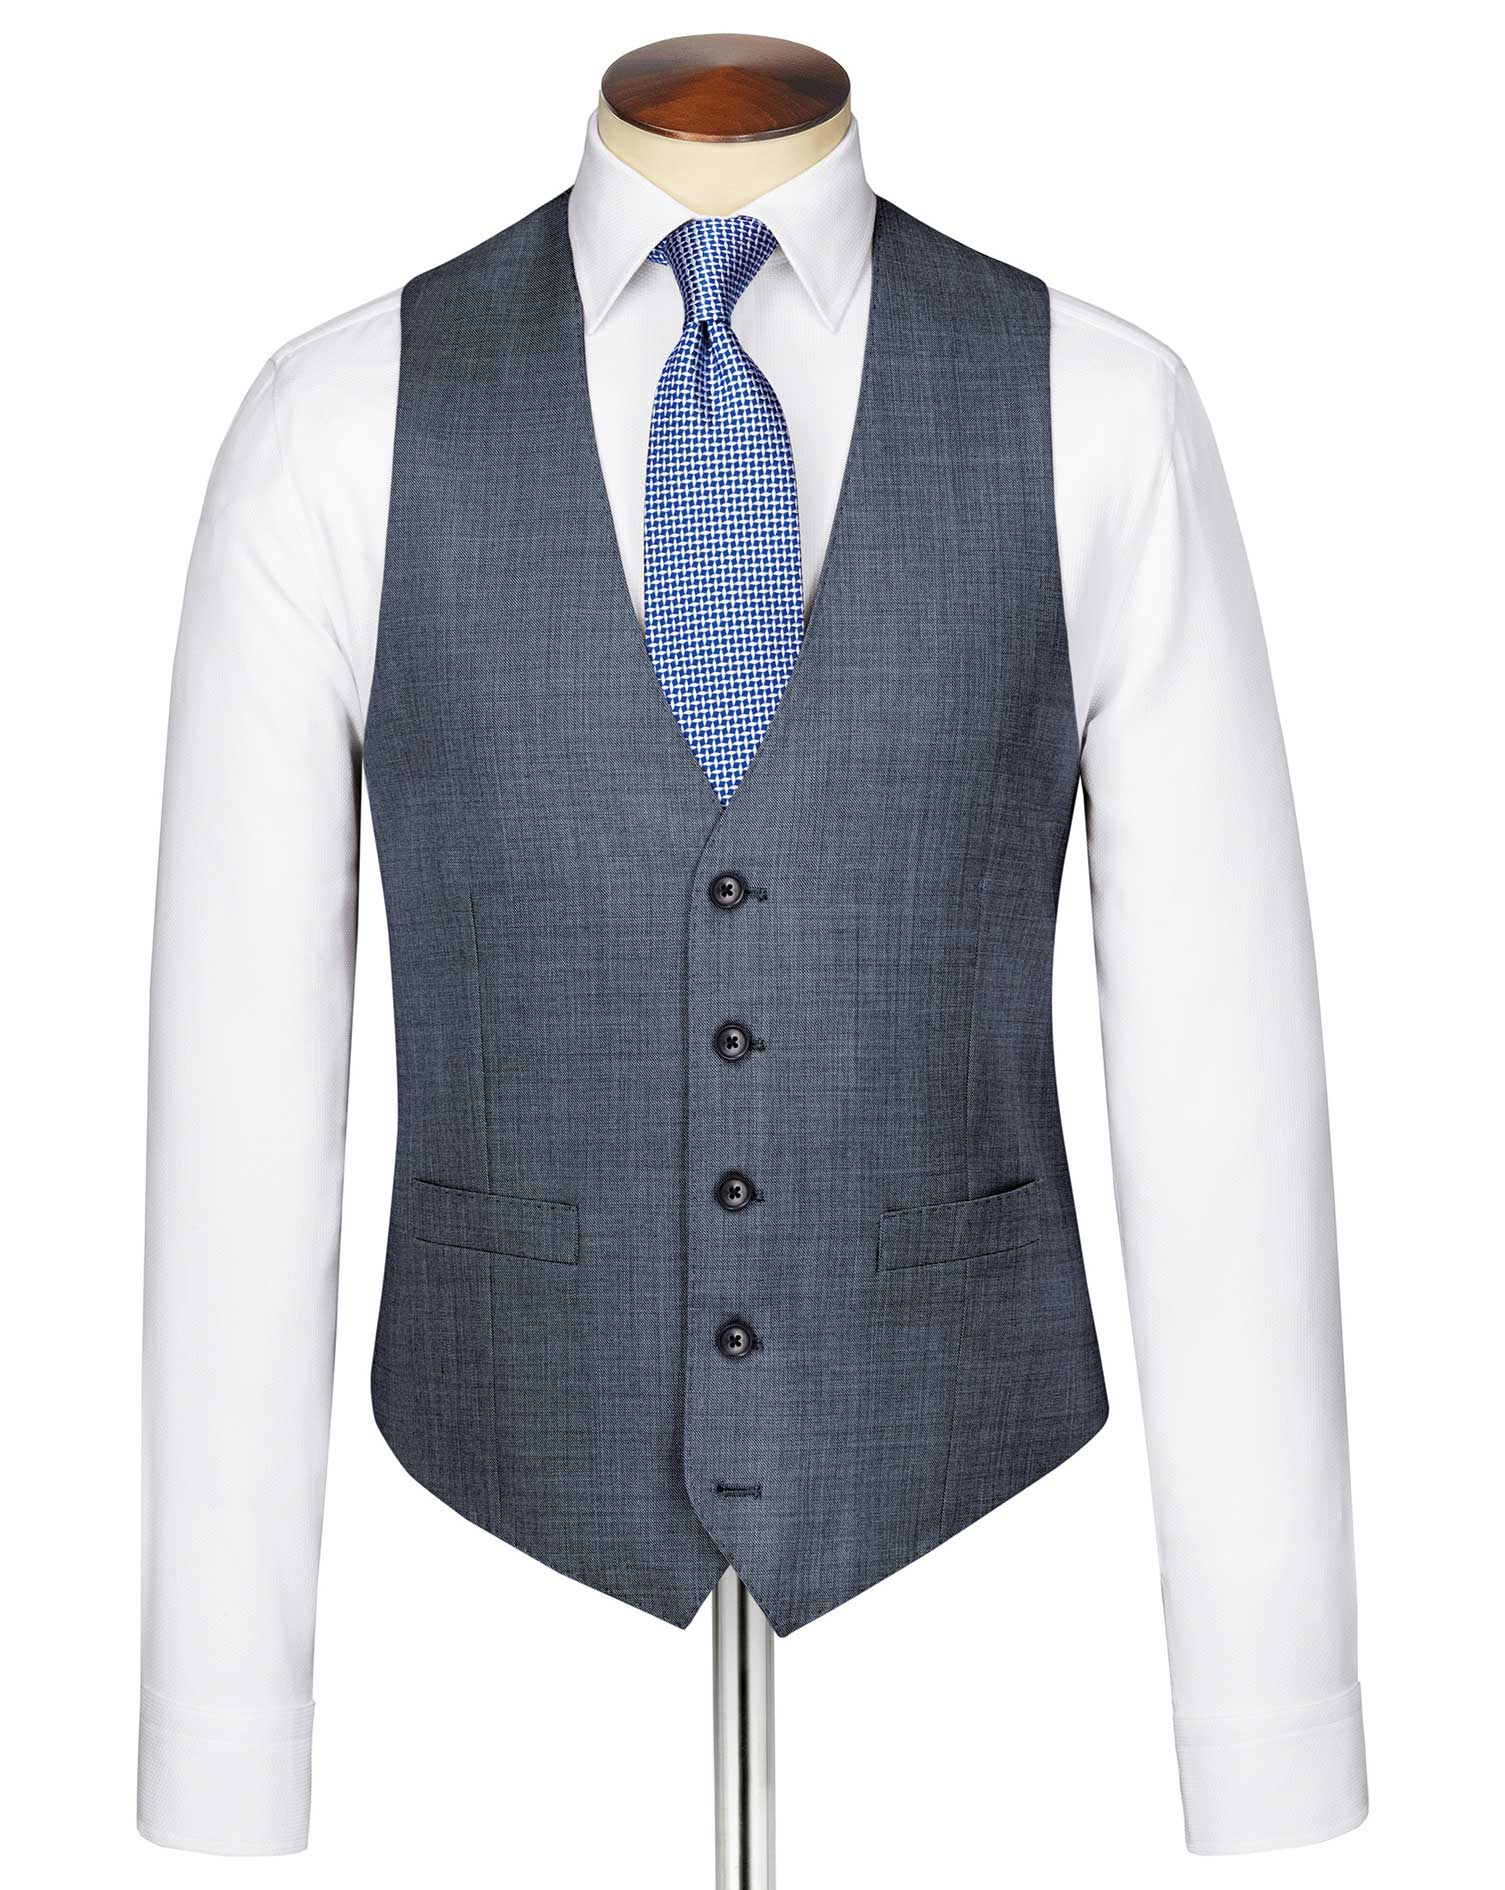 Light Blue Adjustable Fit Sharkskin Travel Suit Wool Waistcoat Size w36 by Charles Tyrwhitt